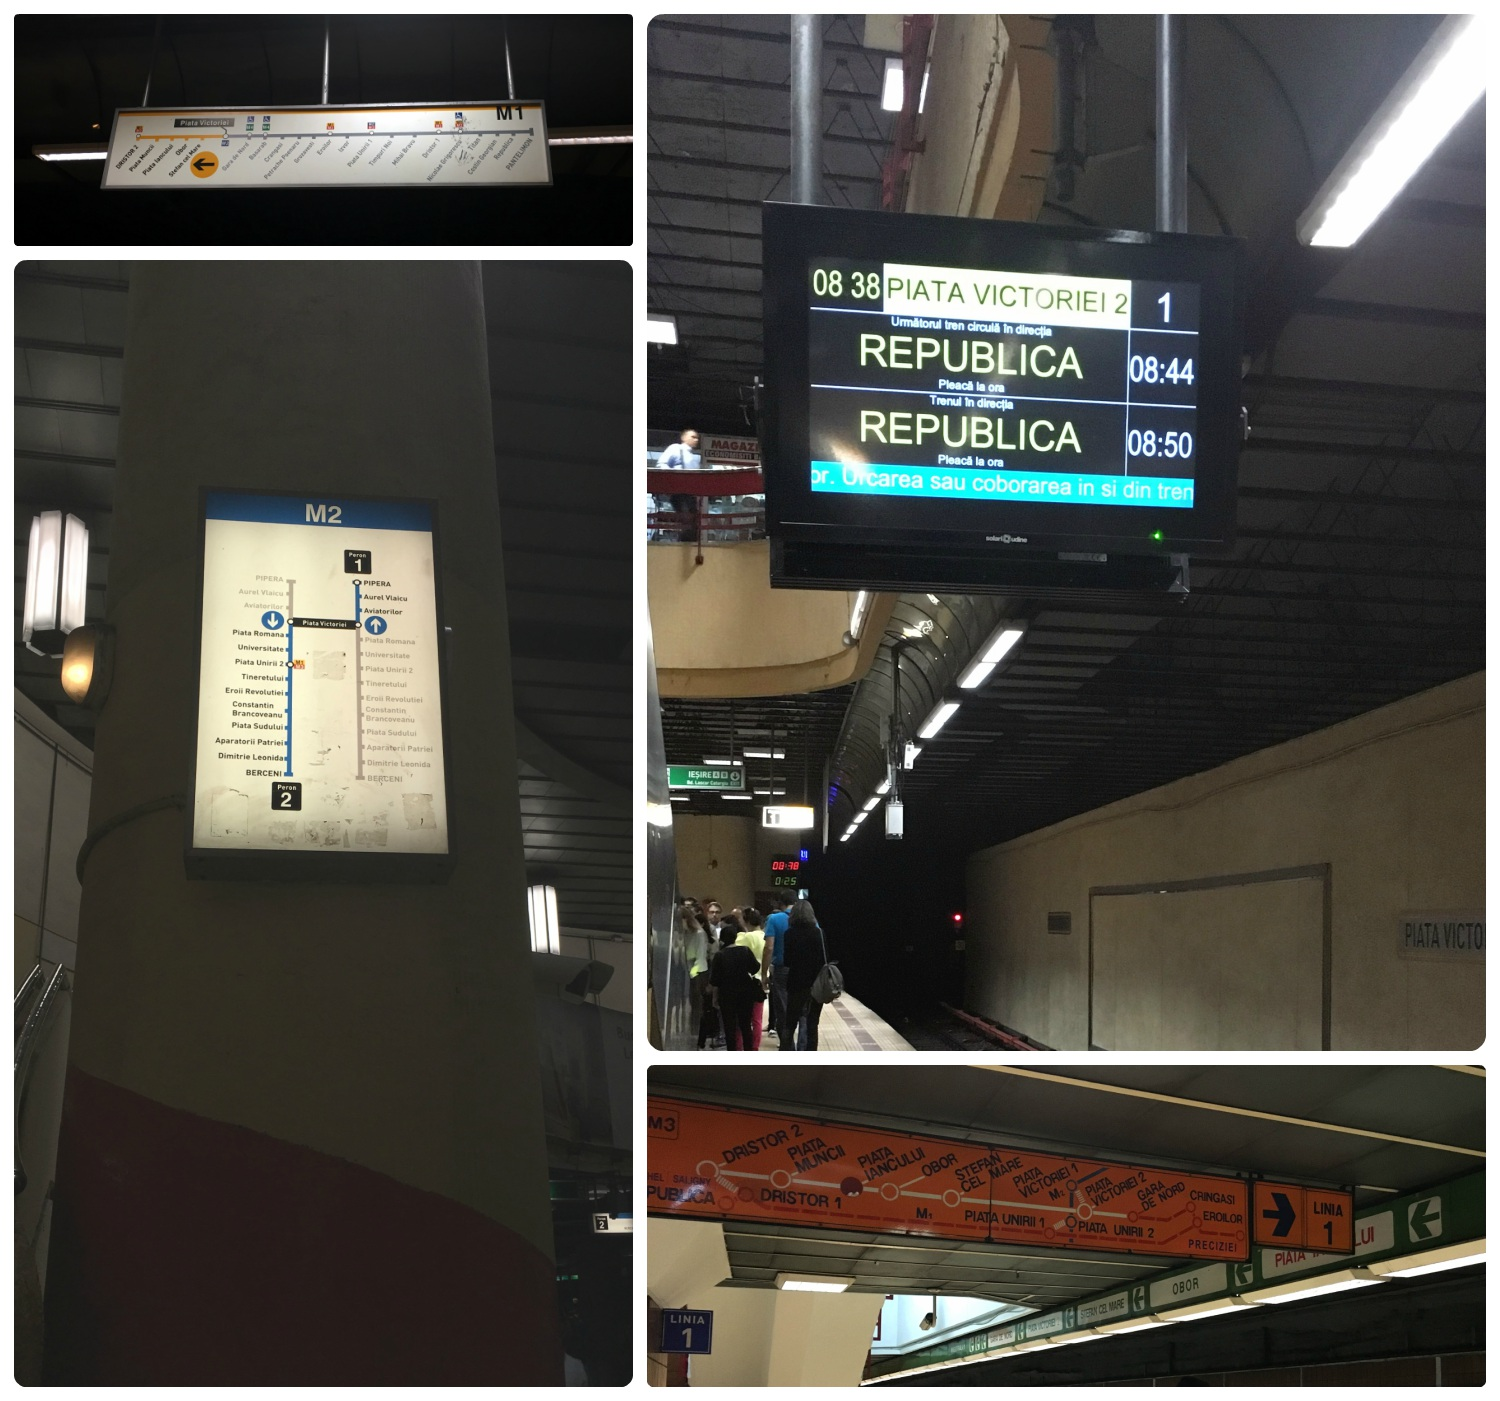 Signs throughout the metro station will help you navigate your way. Some stations had digital signs showing real-time information for the next train, and all stations had route maps posted.